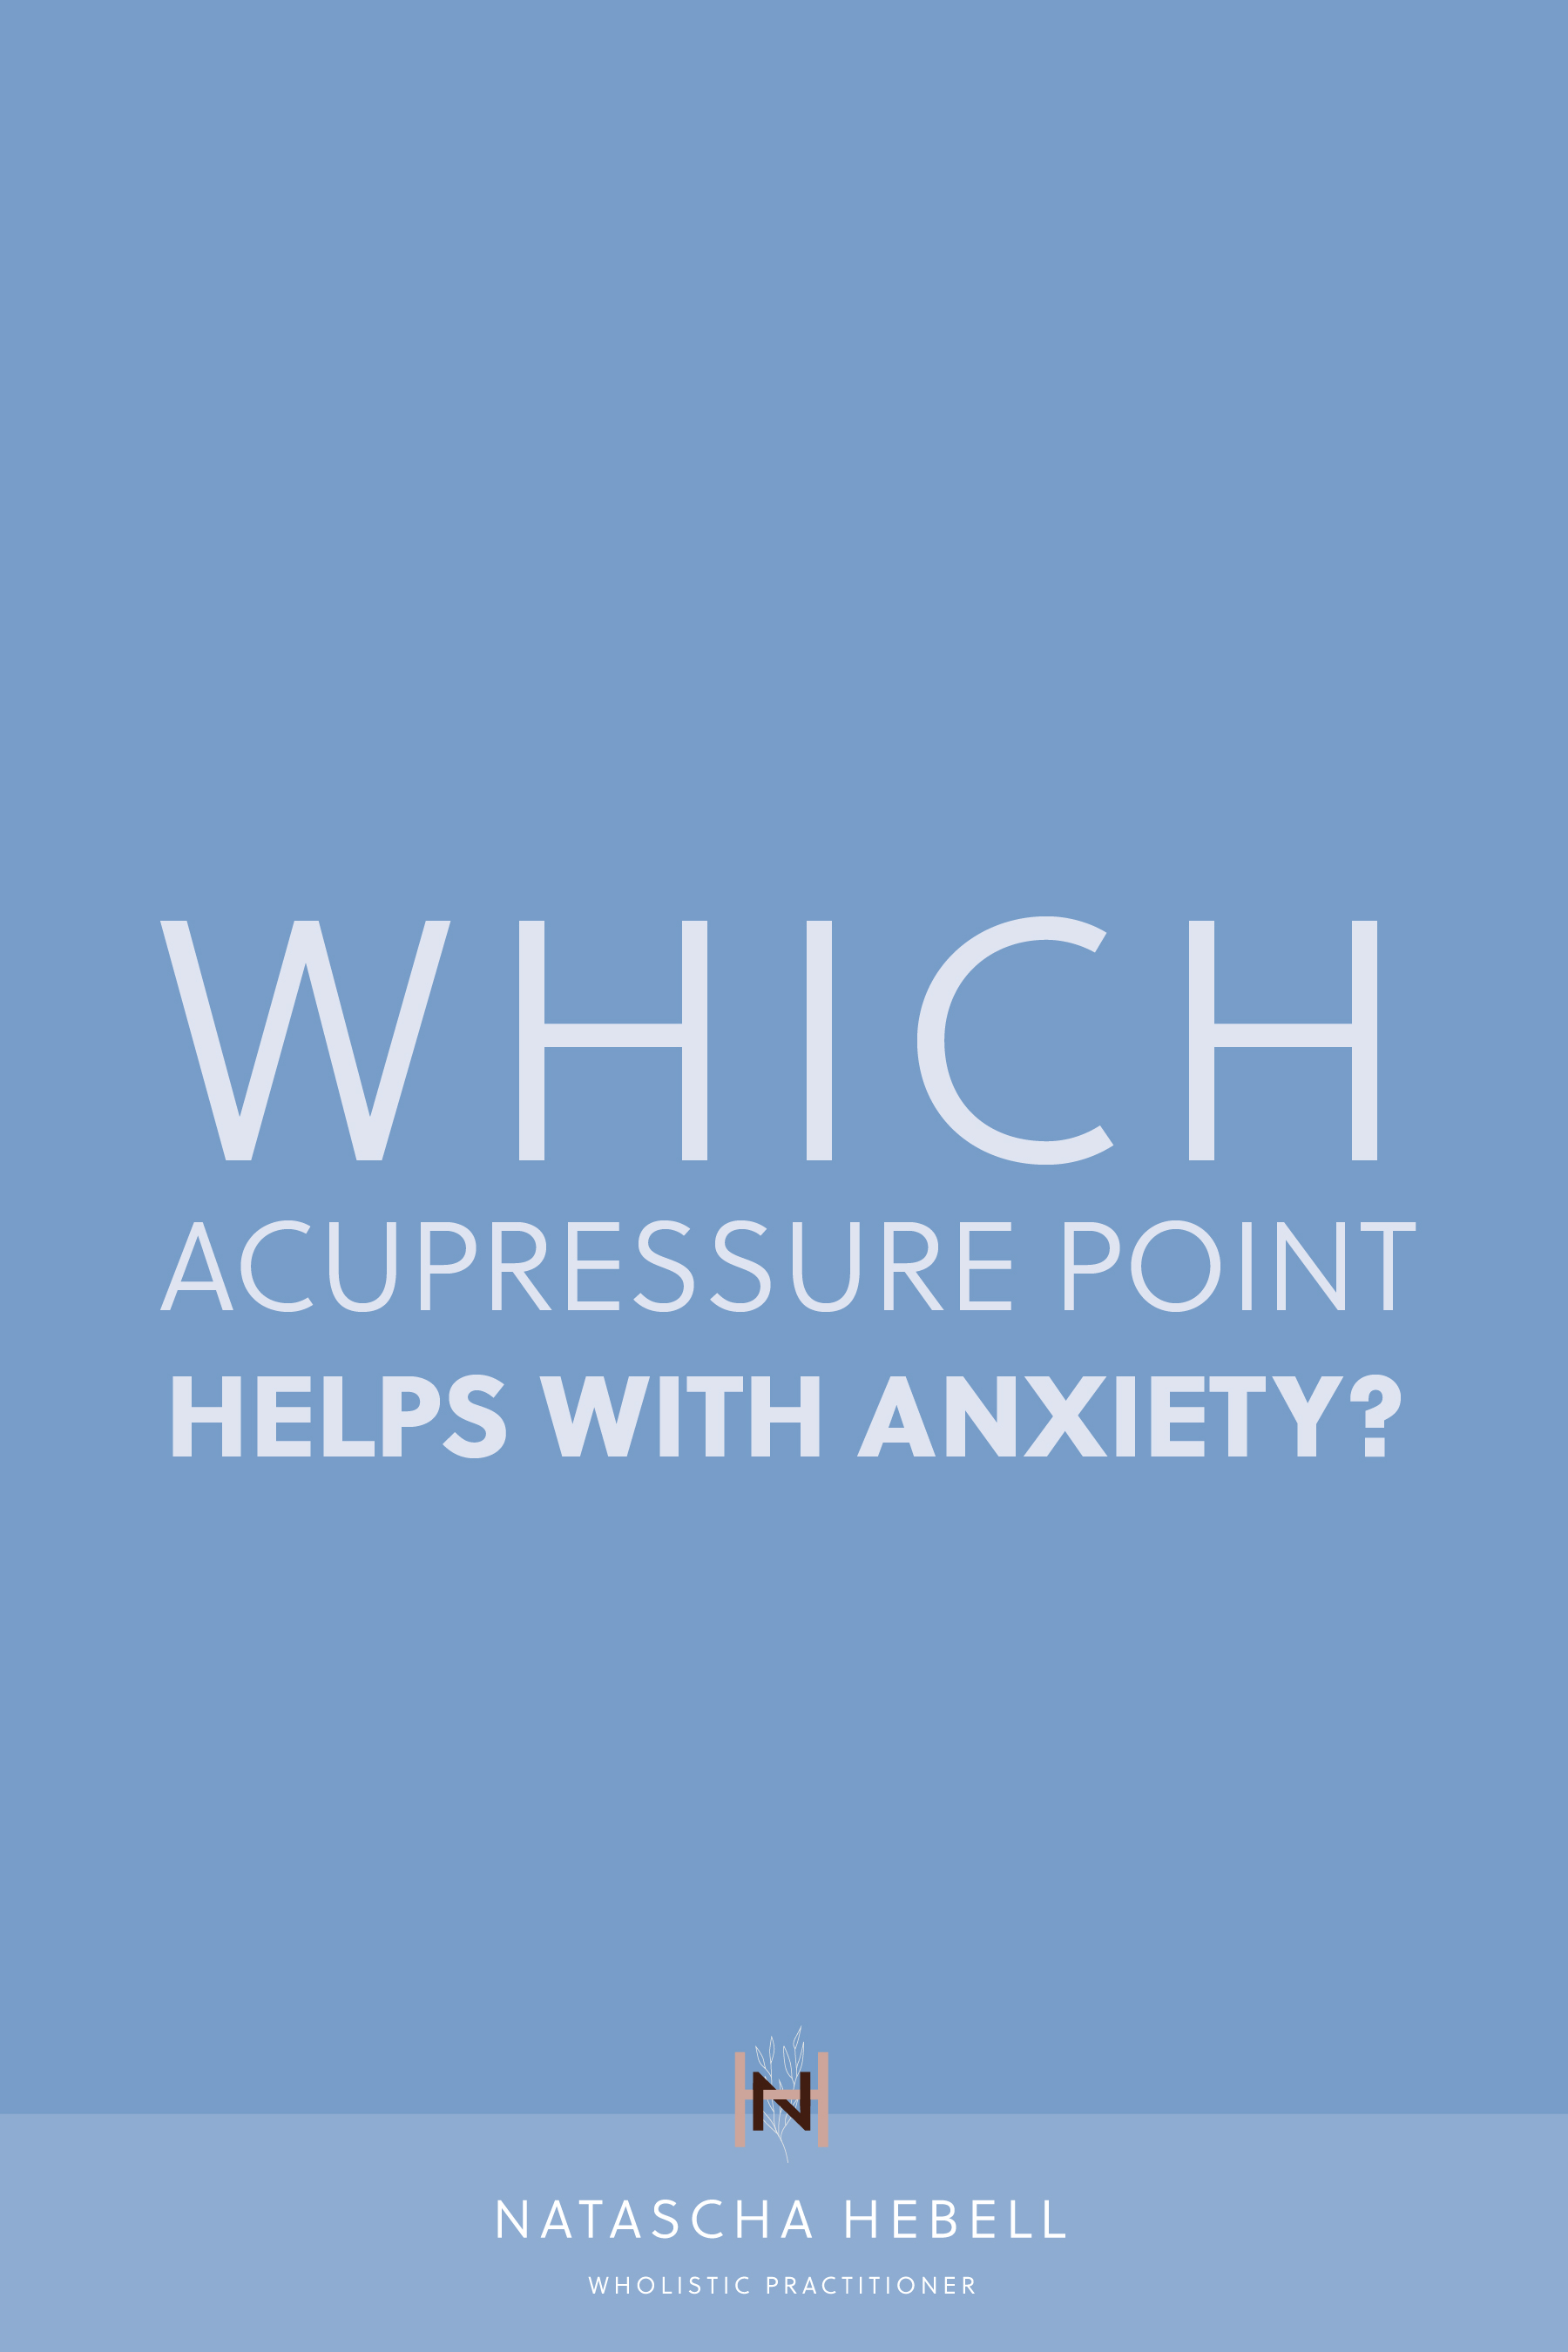 Which acupressure point helps with anxiety? | Natascha Hebell, Wholistic Practitioner